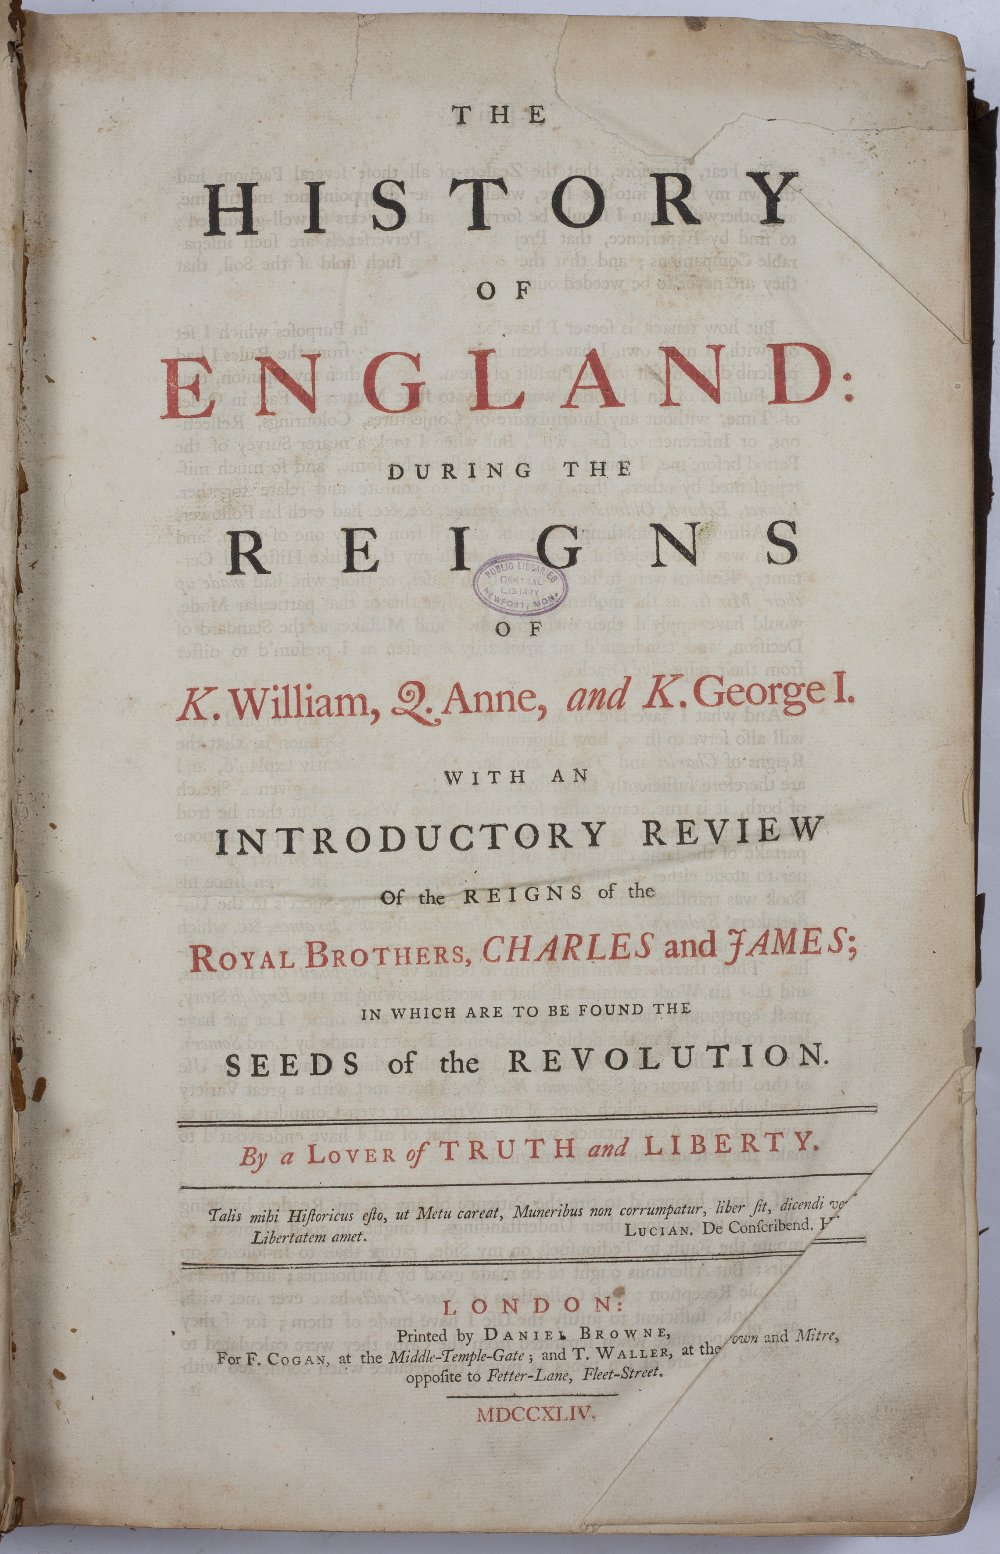 The History of England during the Reigns of K(ing) William, Q(ueen) Anne and King Geo.I with an - Image 4 of 4